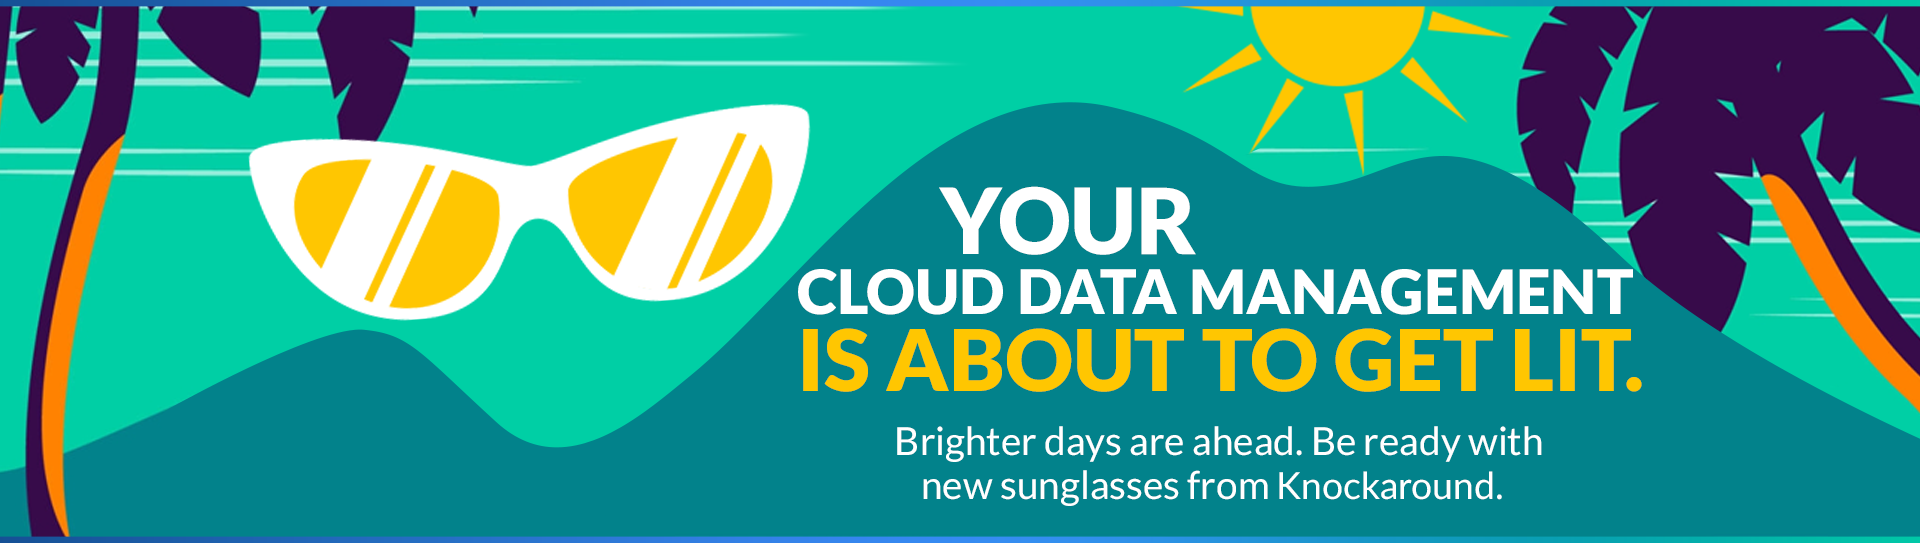 SEE CLOUD DATA MANAGEMENT WITH NEW EYES.